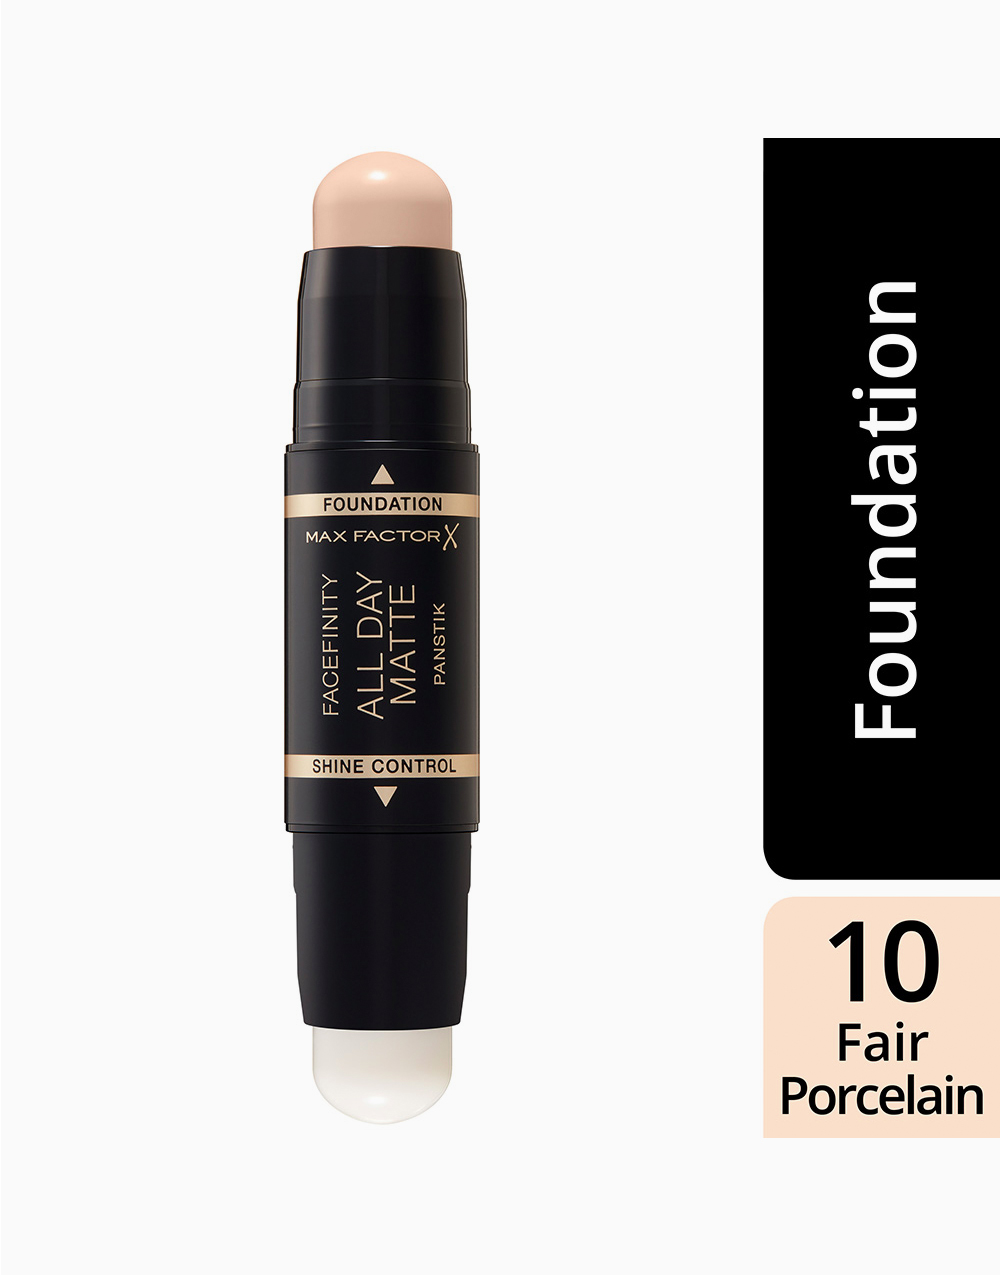 Facefinity All Day Matte Panstik by Max Factor | Fair Porcelain